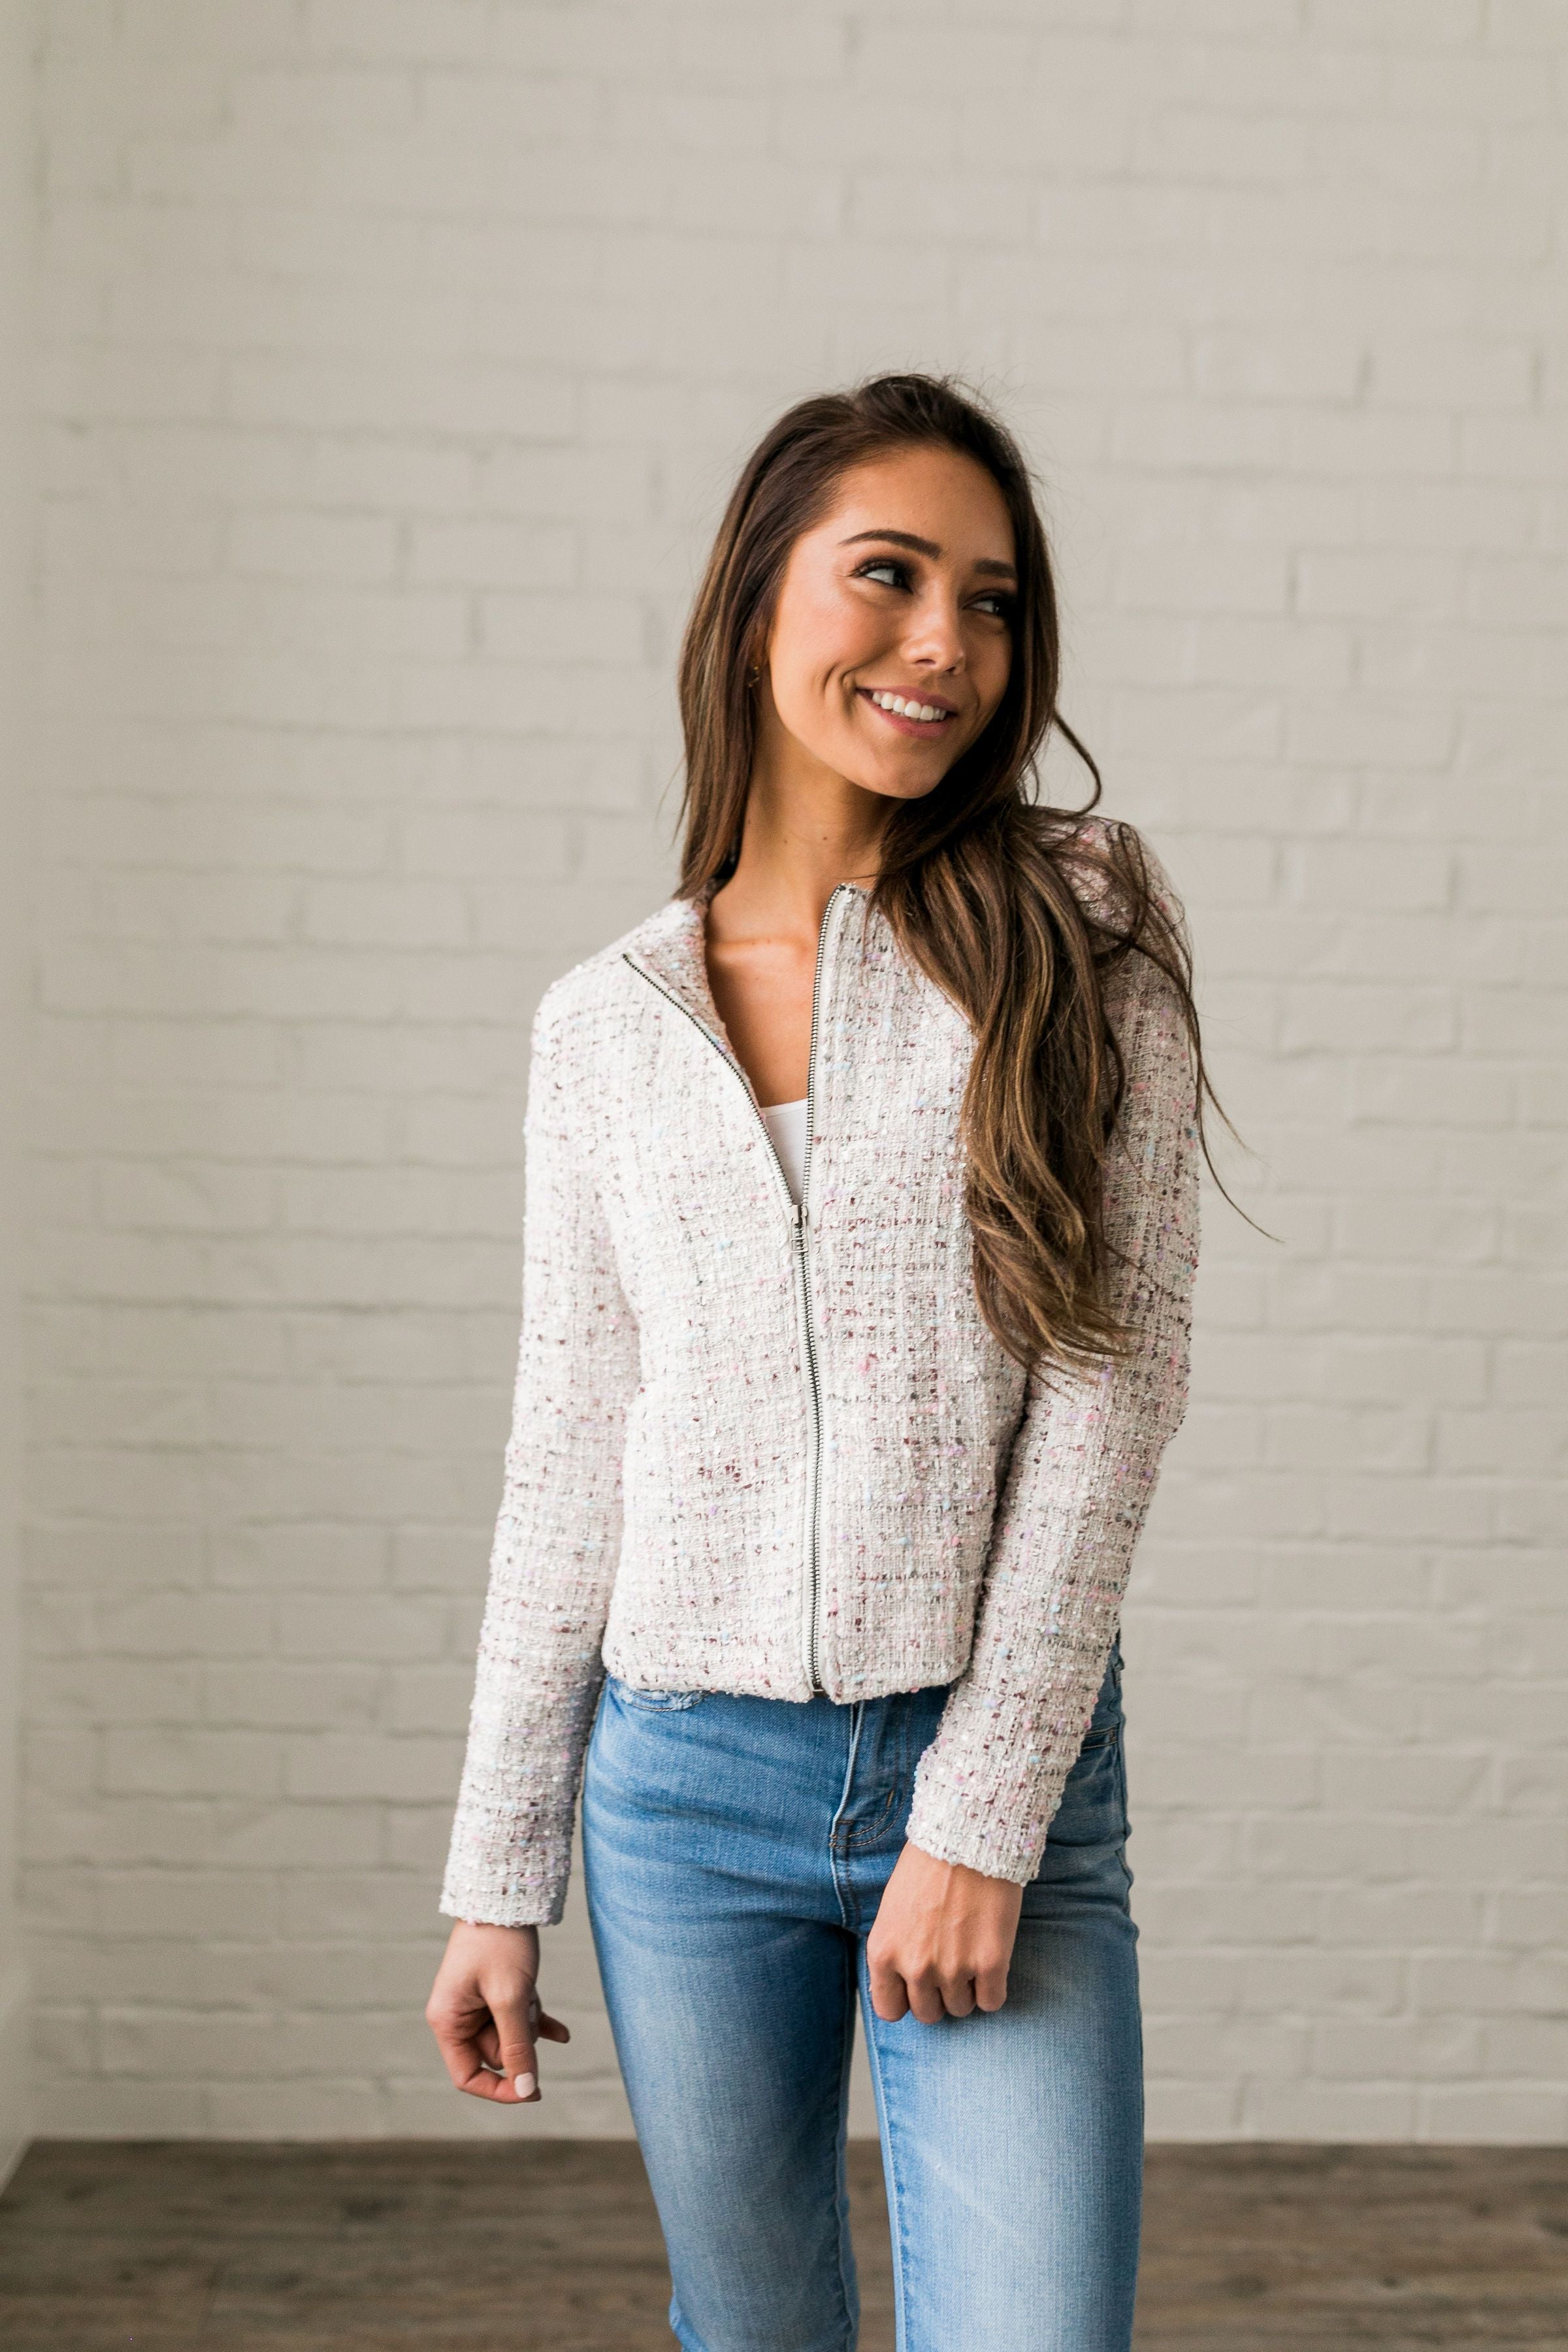 First Lady Cropped Jacket - ALL SALES FINAL